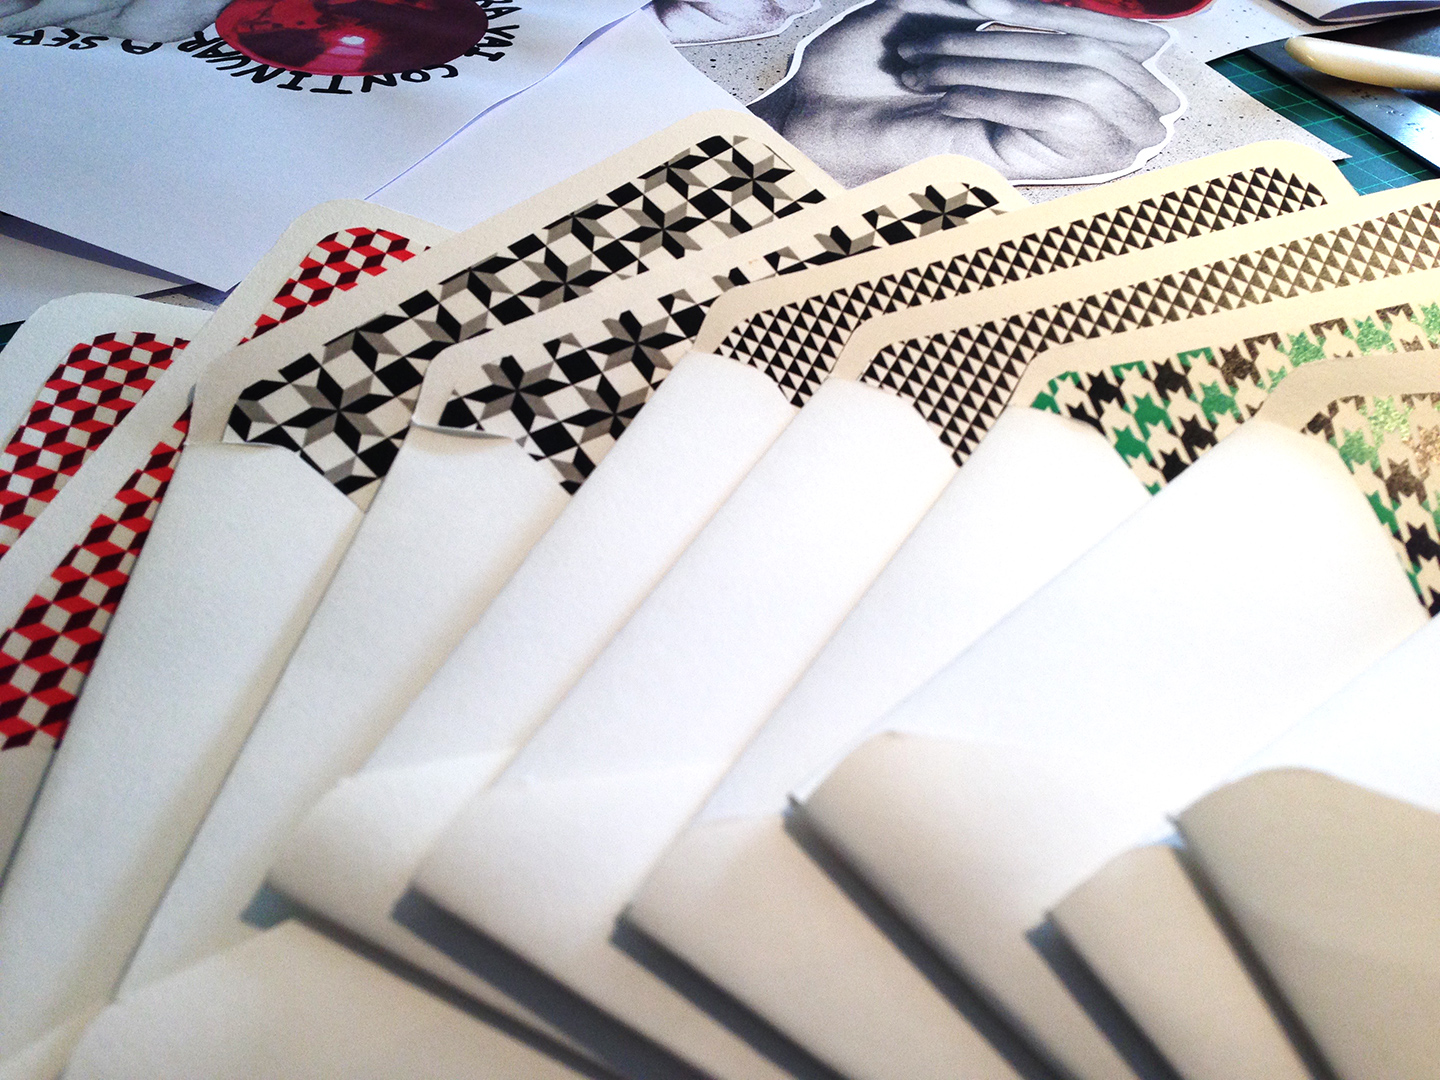 Hand-made envelopes and other promocional materials for Christmas 2015.